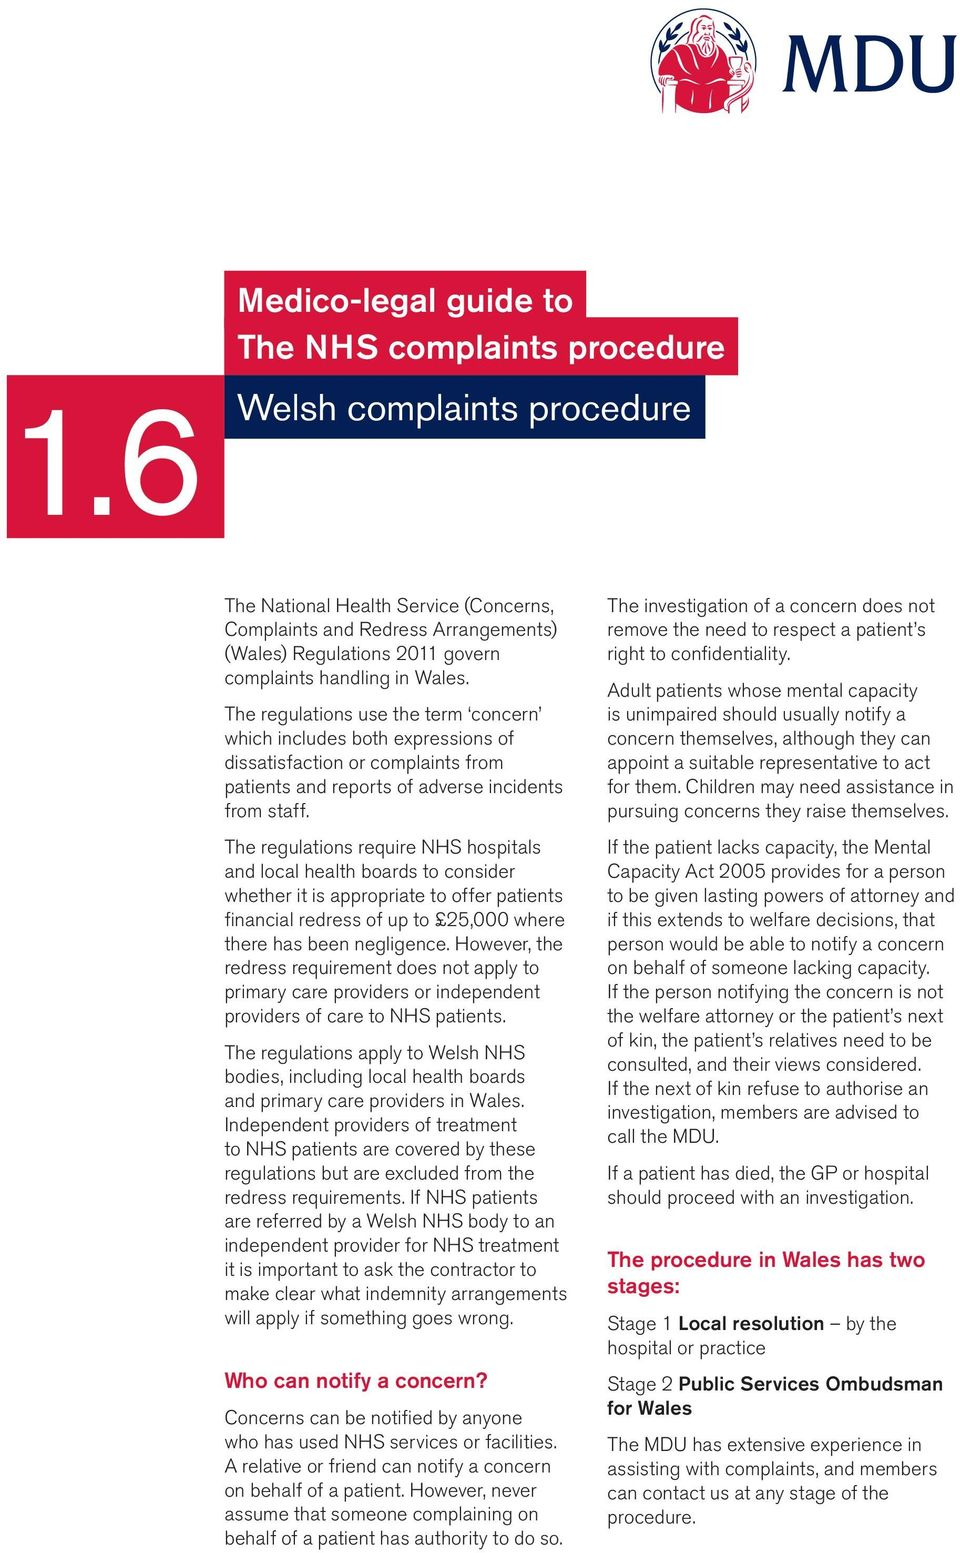 The regulations require NHS hospitals and local health boards to consider whether it is appropriate to offer patients financial redress of up to 25,000 where there has been negligence.